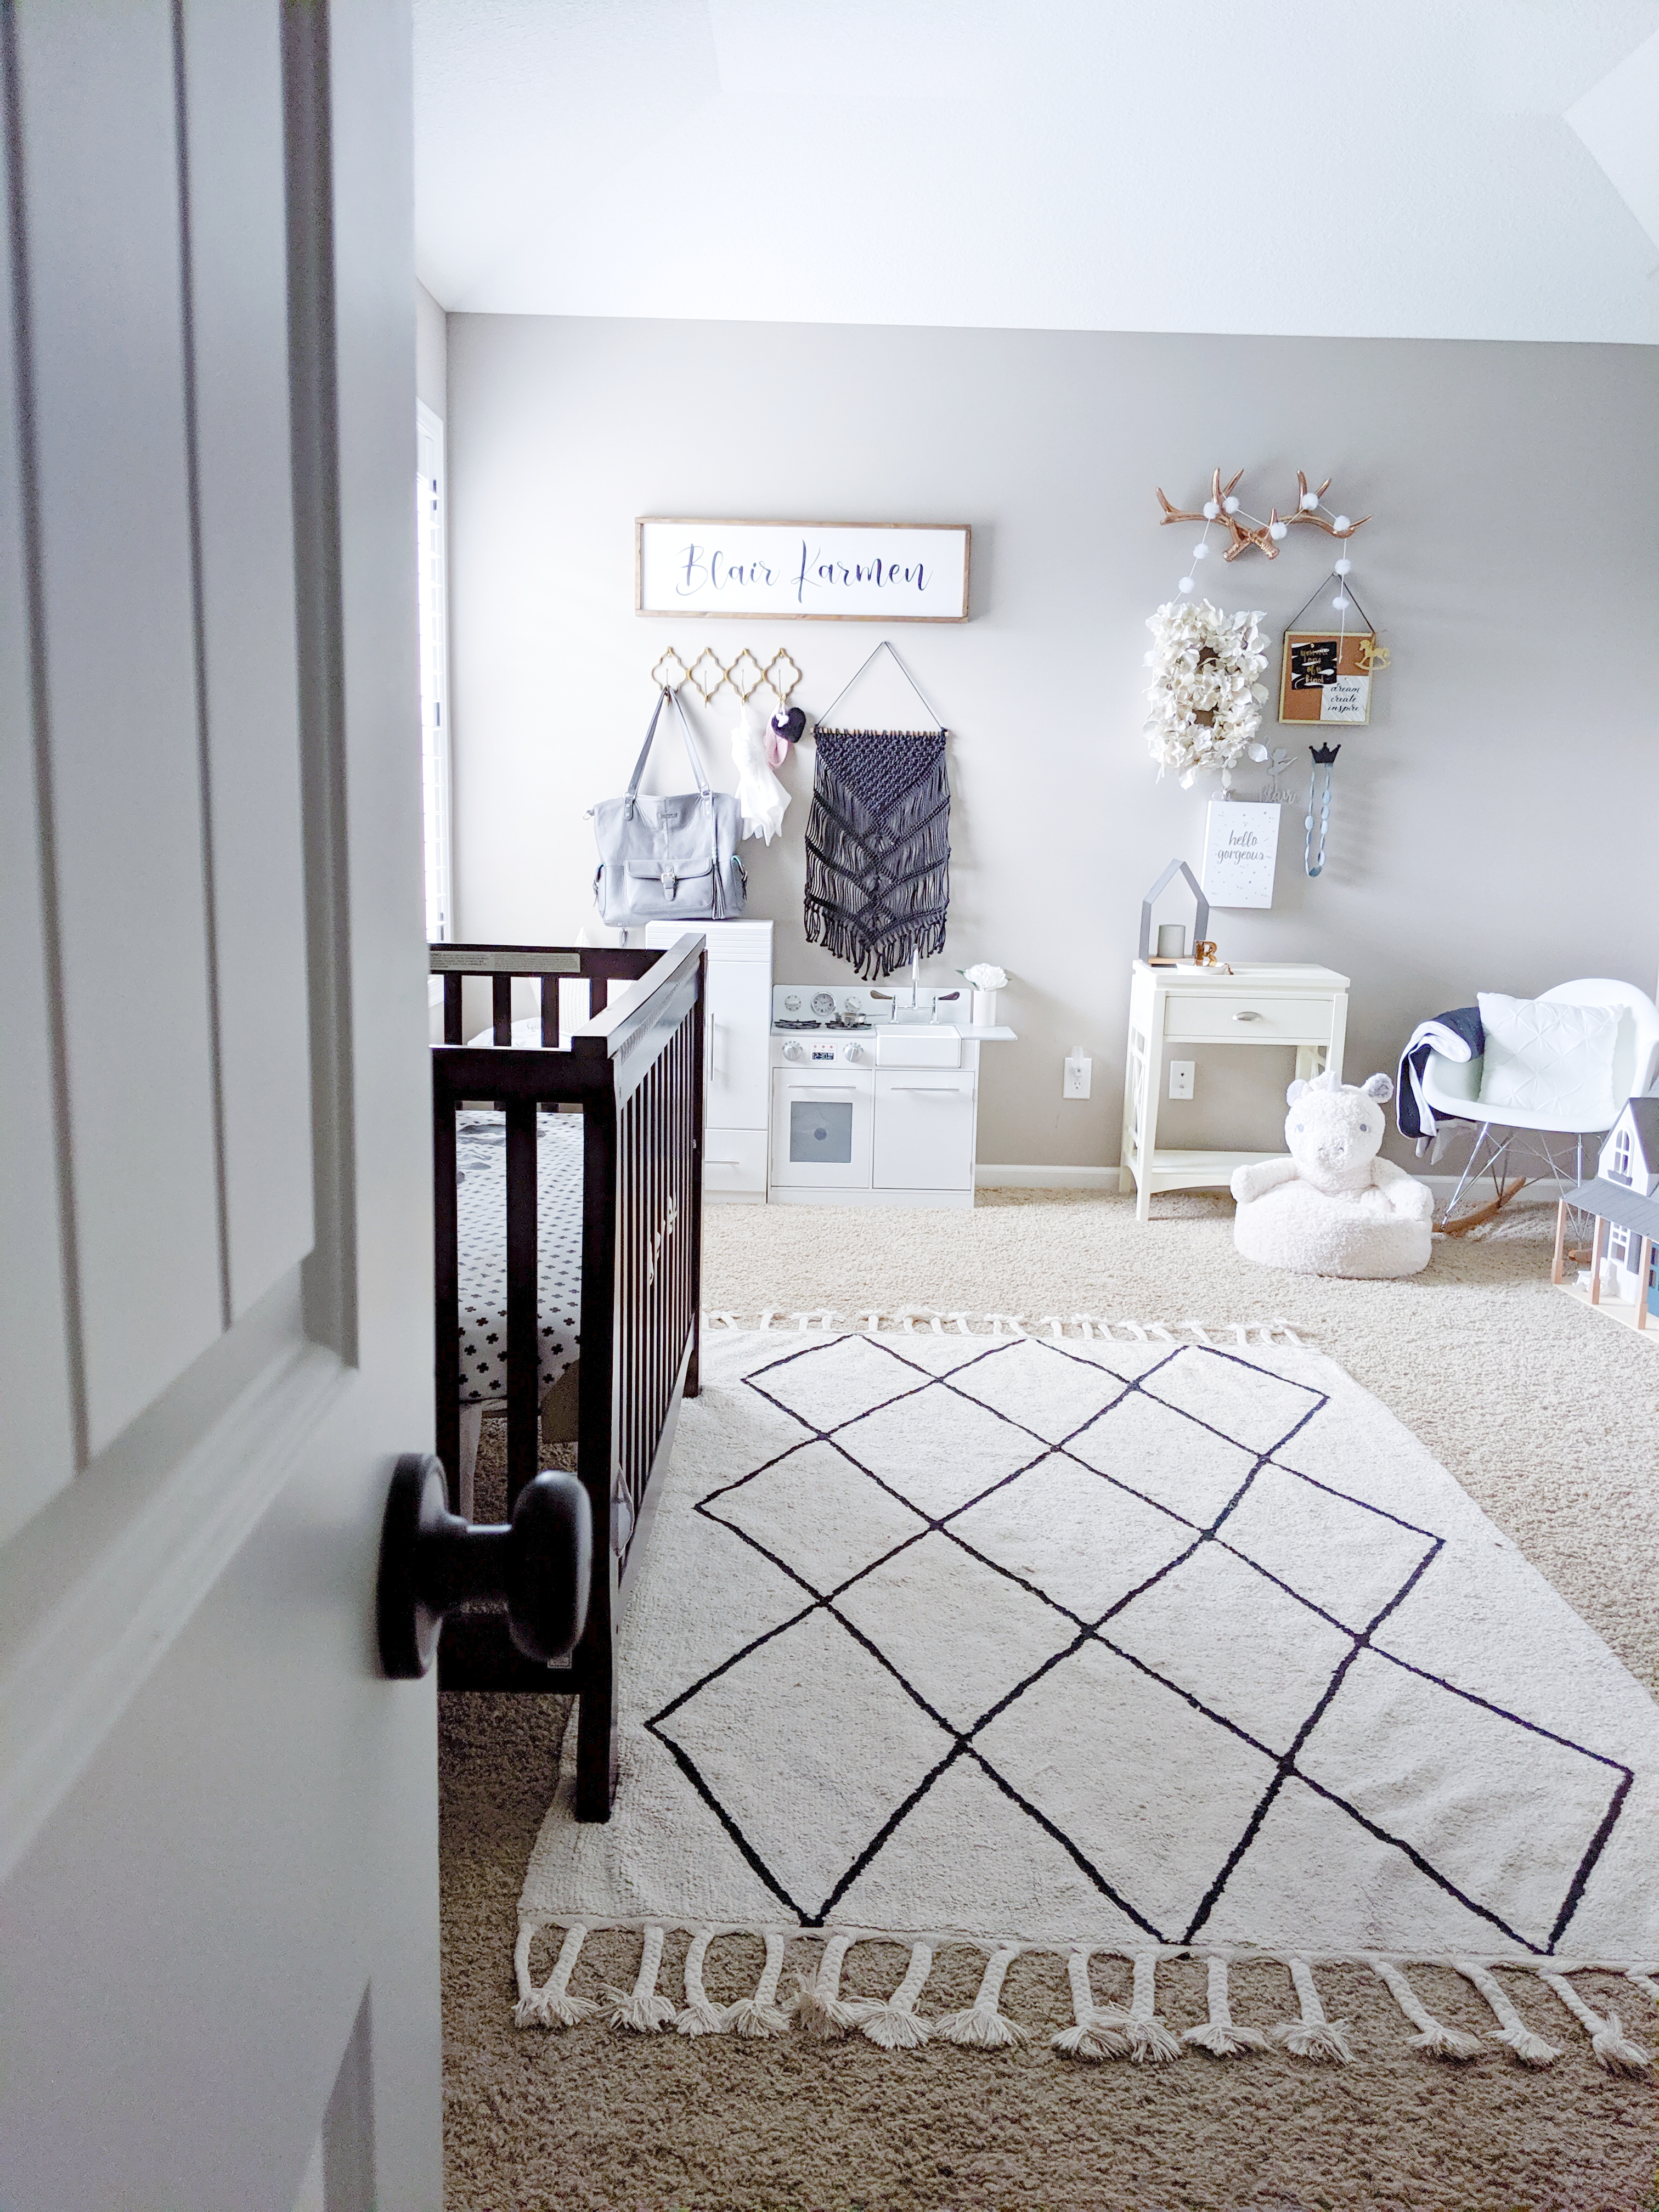 This is the cutest baby girl nursery! Exactly how I want my baby girl nursery to look. I love that it's a baby girl nursery not pink! Baby girl nursery monochrome, grey and white nursery, baby girl nursery ideas not pink. #babygirlnursery #nurserydecor #girlnursery